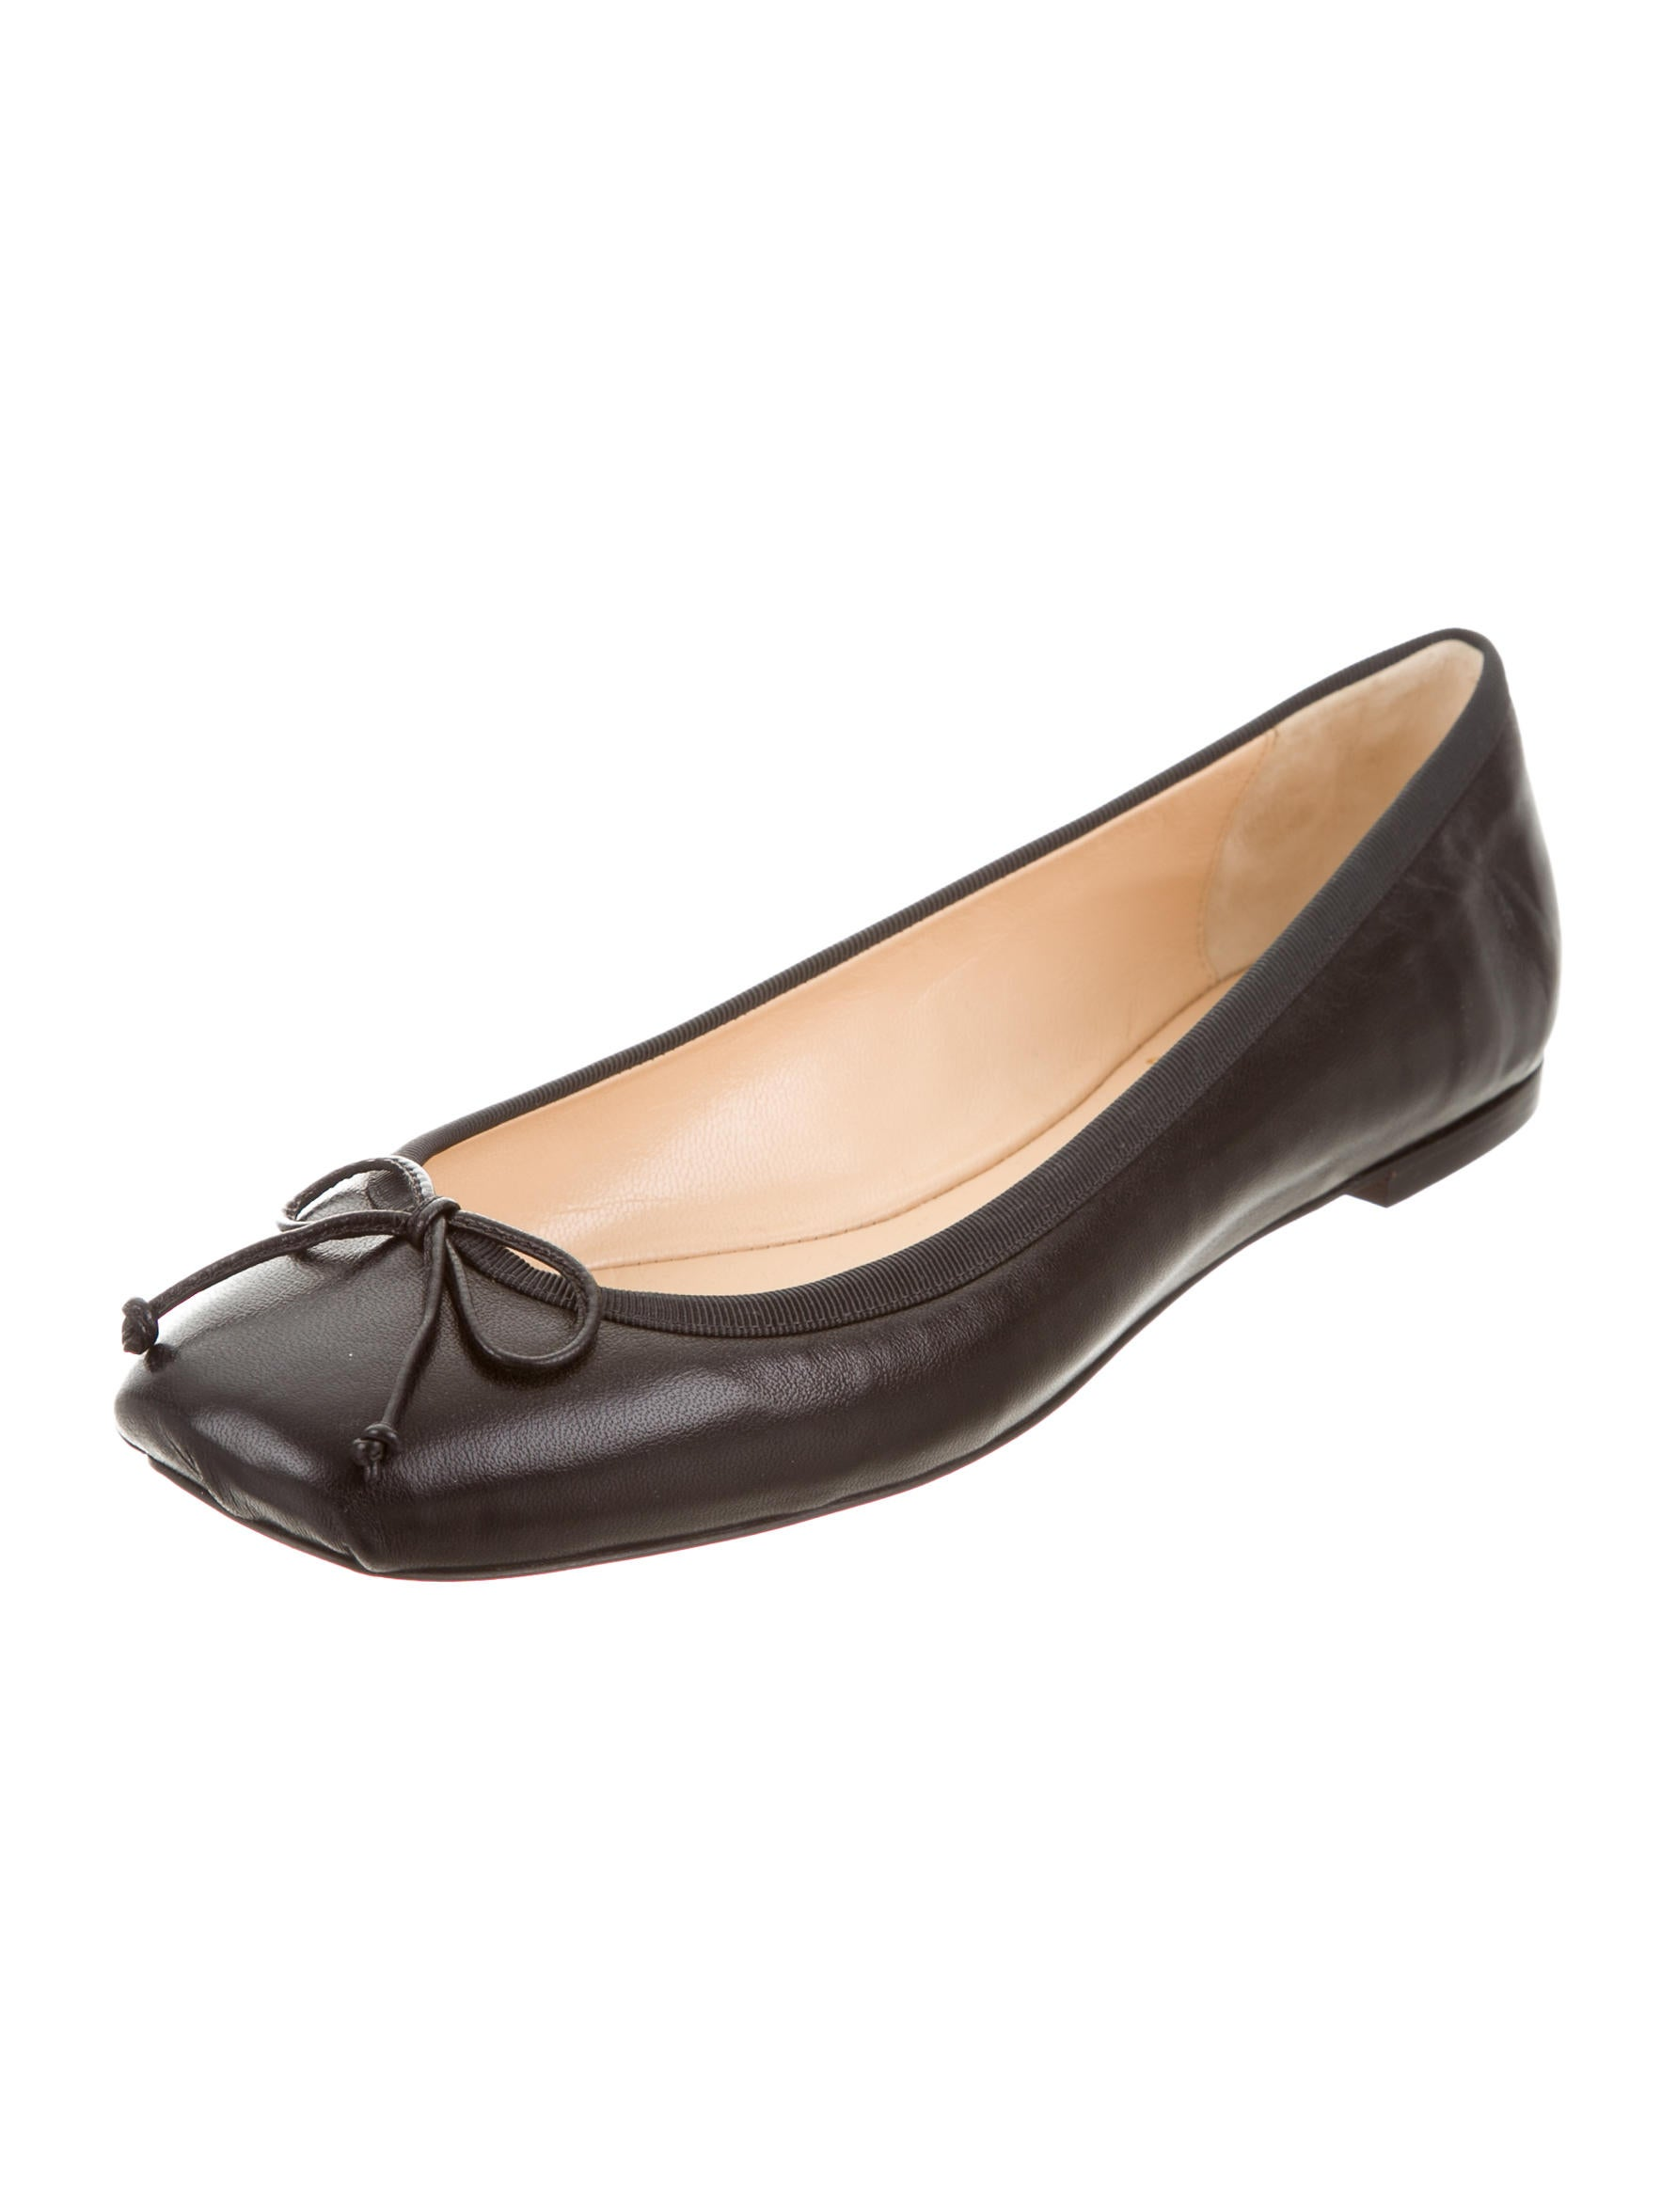 Christian Louboutin Leather Ballet Flats Shoes